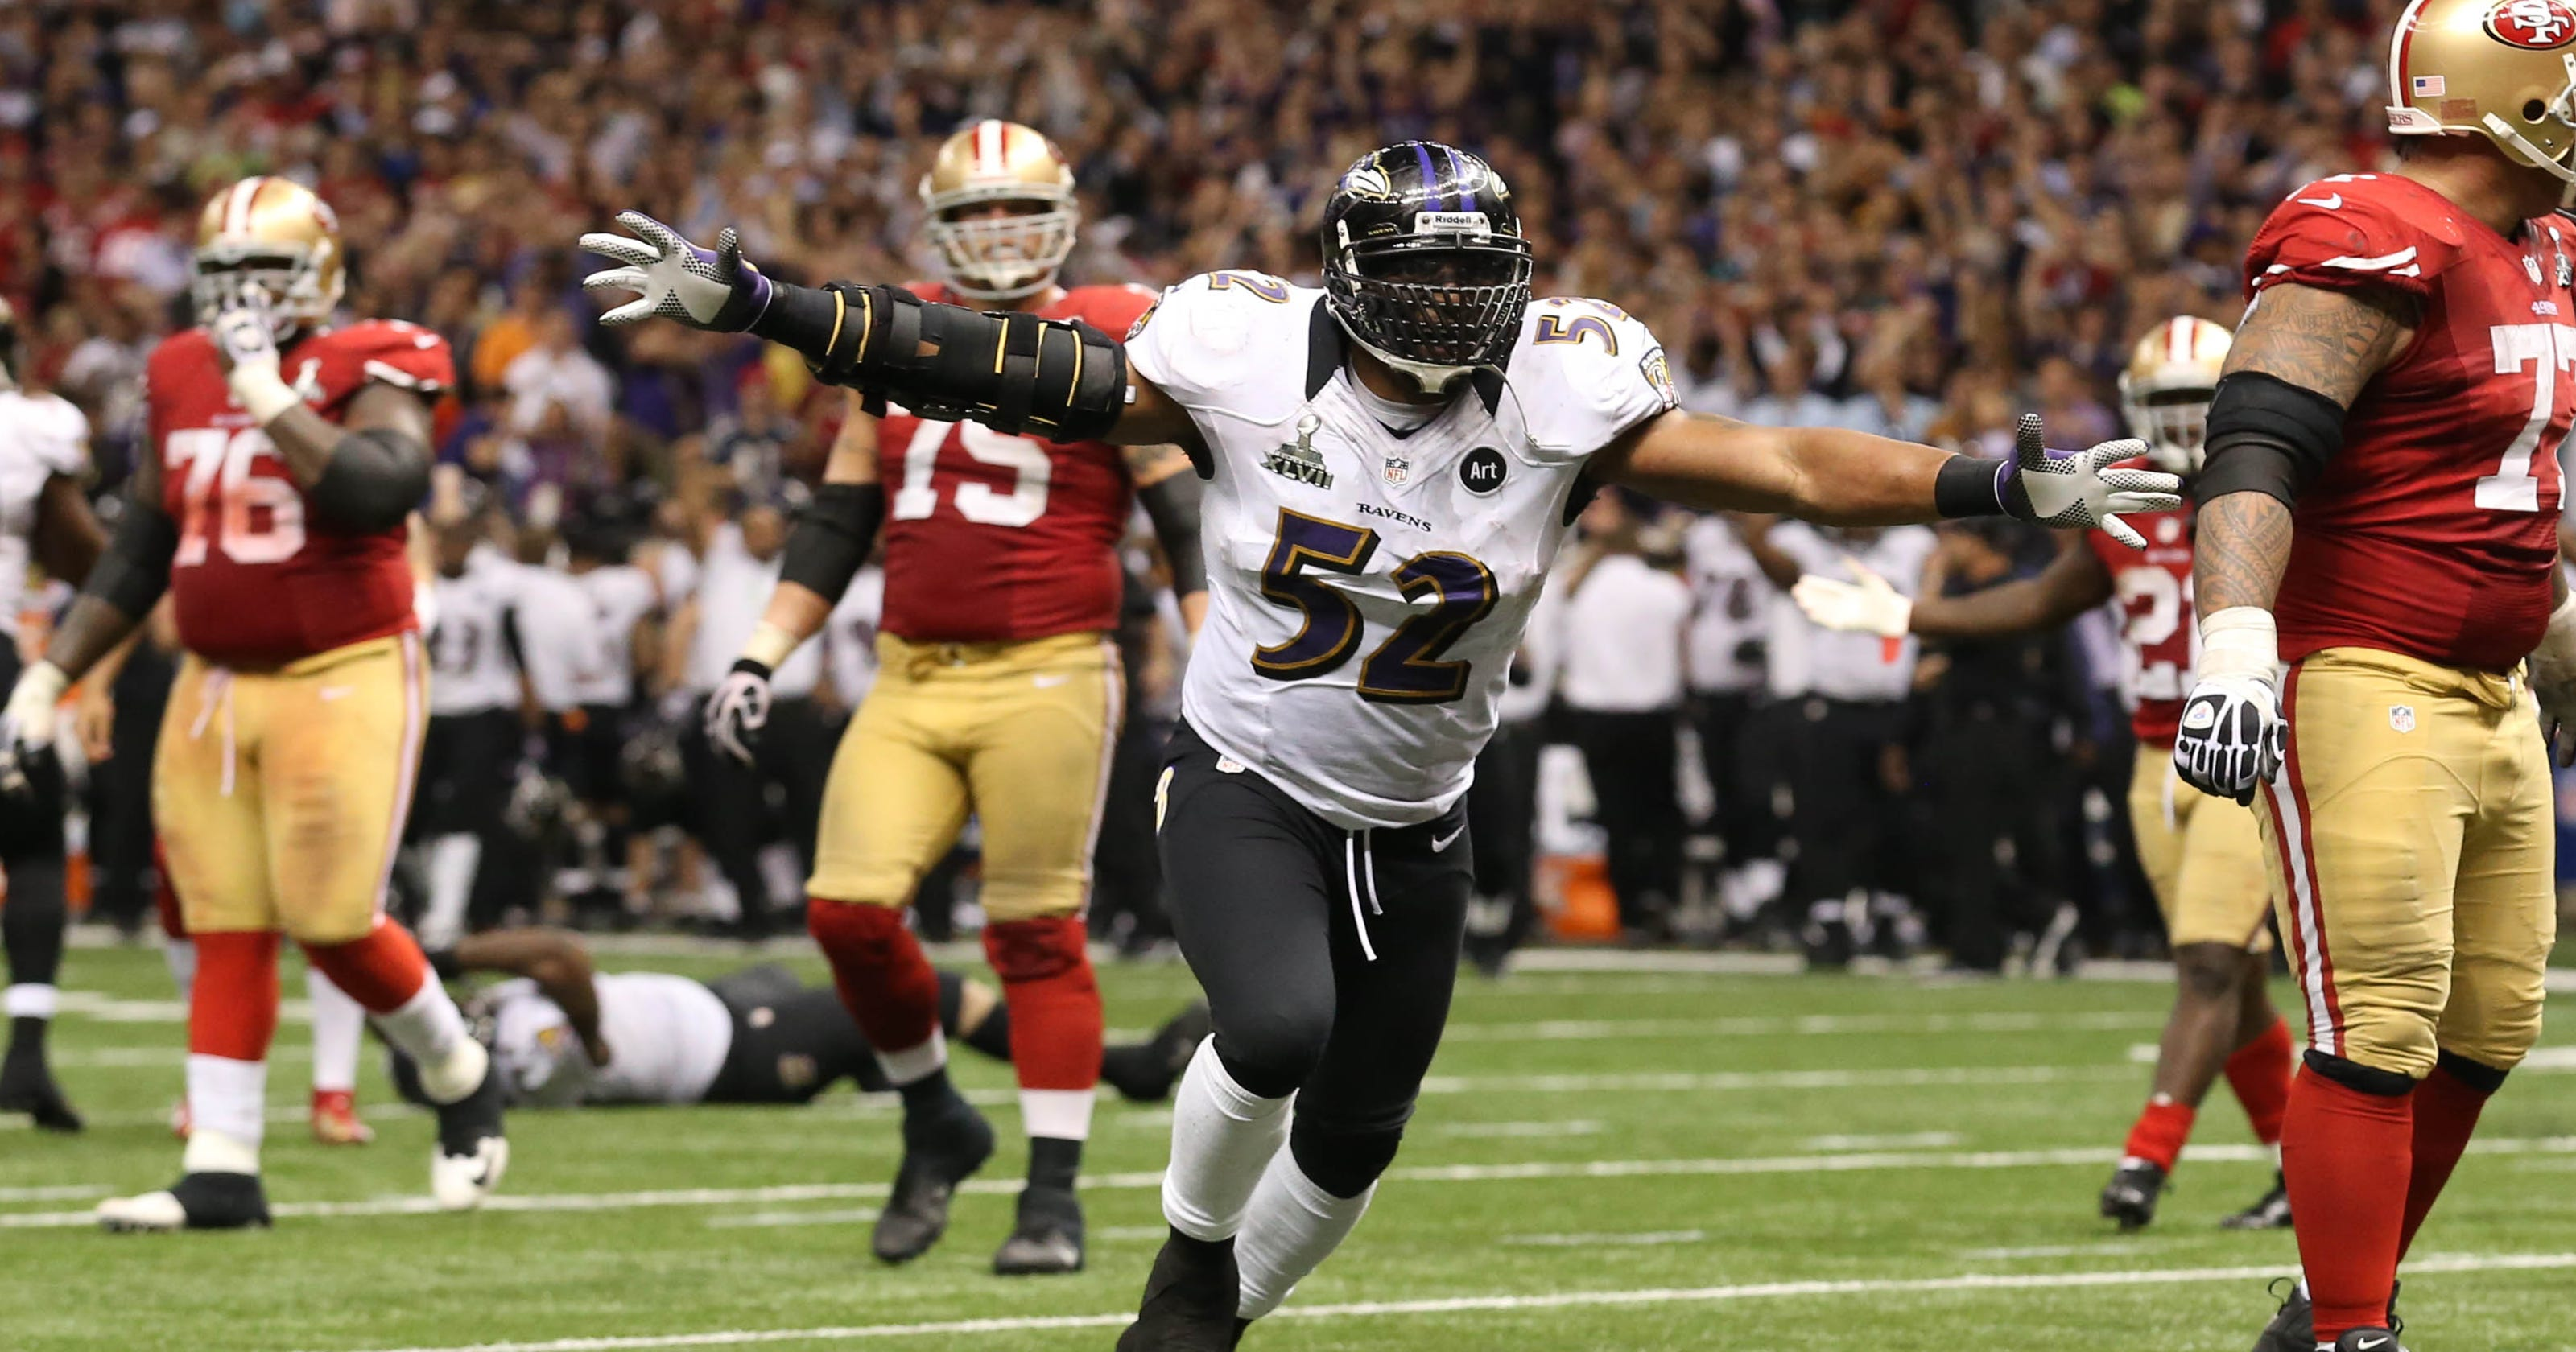 984bc5d2 America's Game' reveals what Ray Lewis thought of Super Bowl blackout